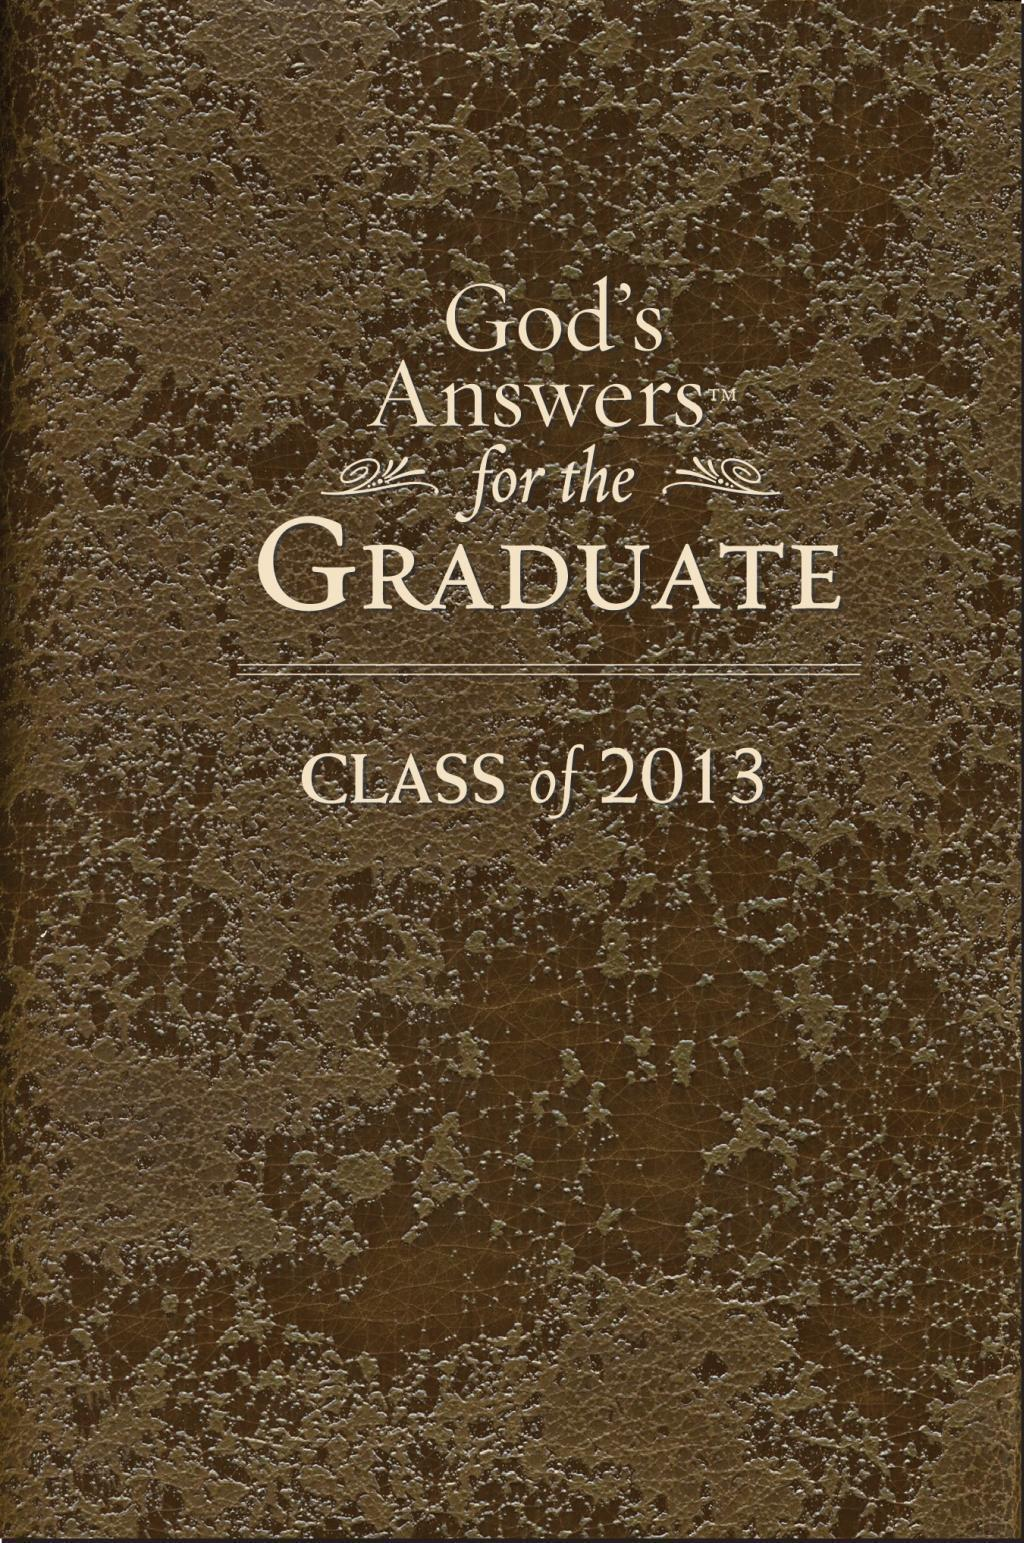 God's Answers for the Graduate: Class of 2013 - Brown